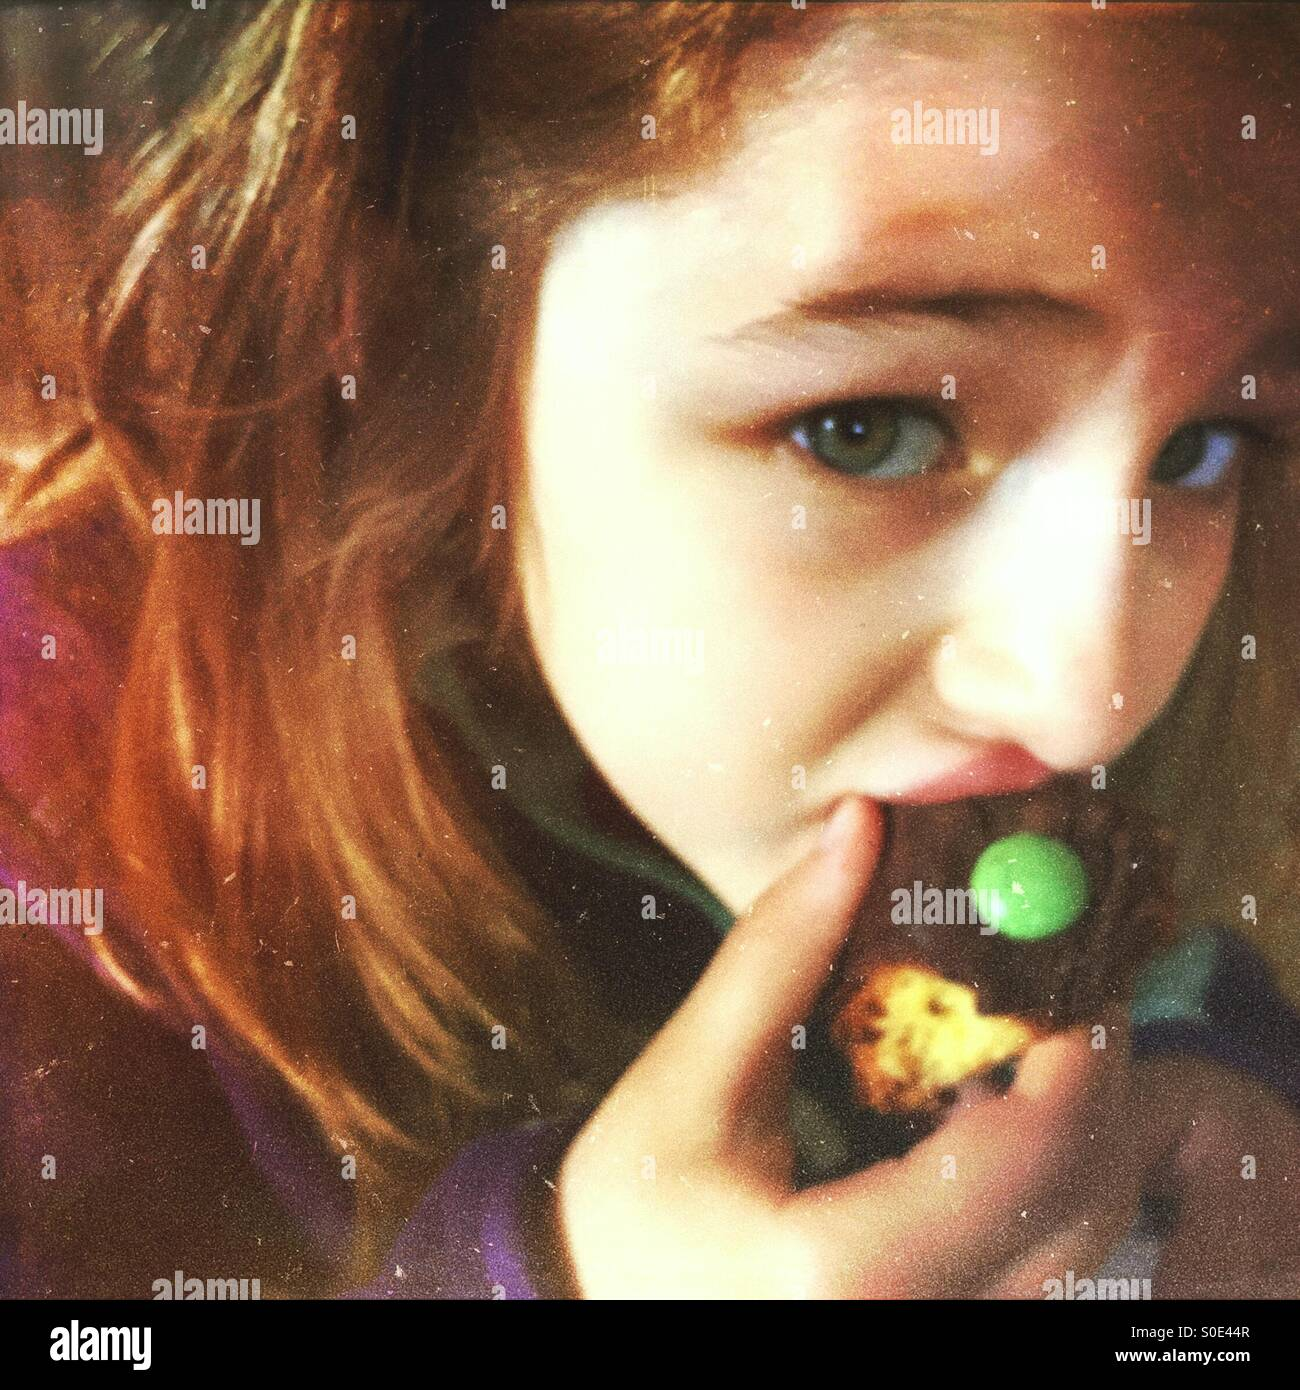 Caught red handed. Sneaky little girl eating chocolate cake. - Stock Image